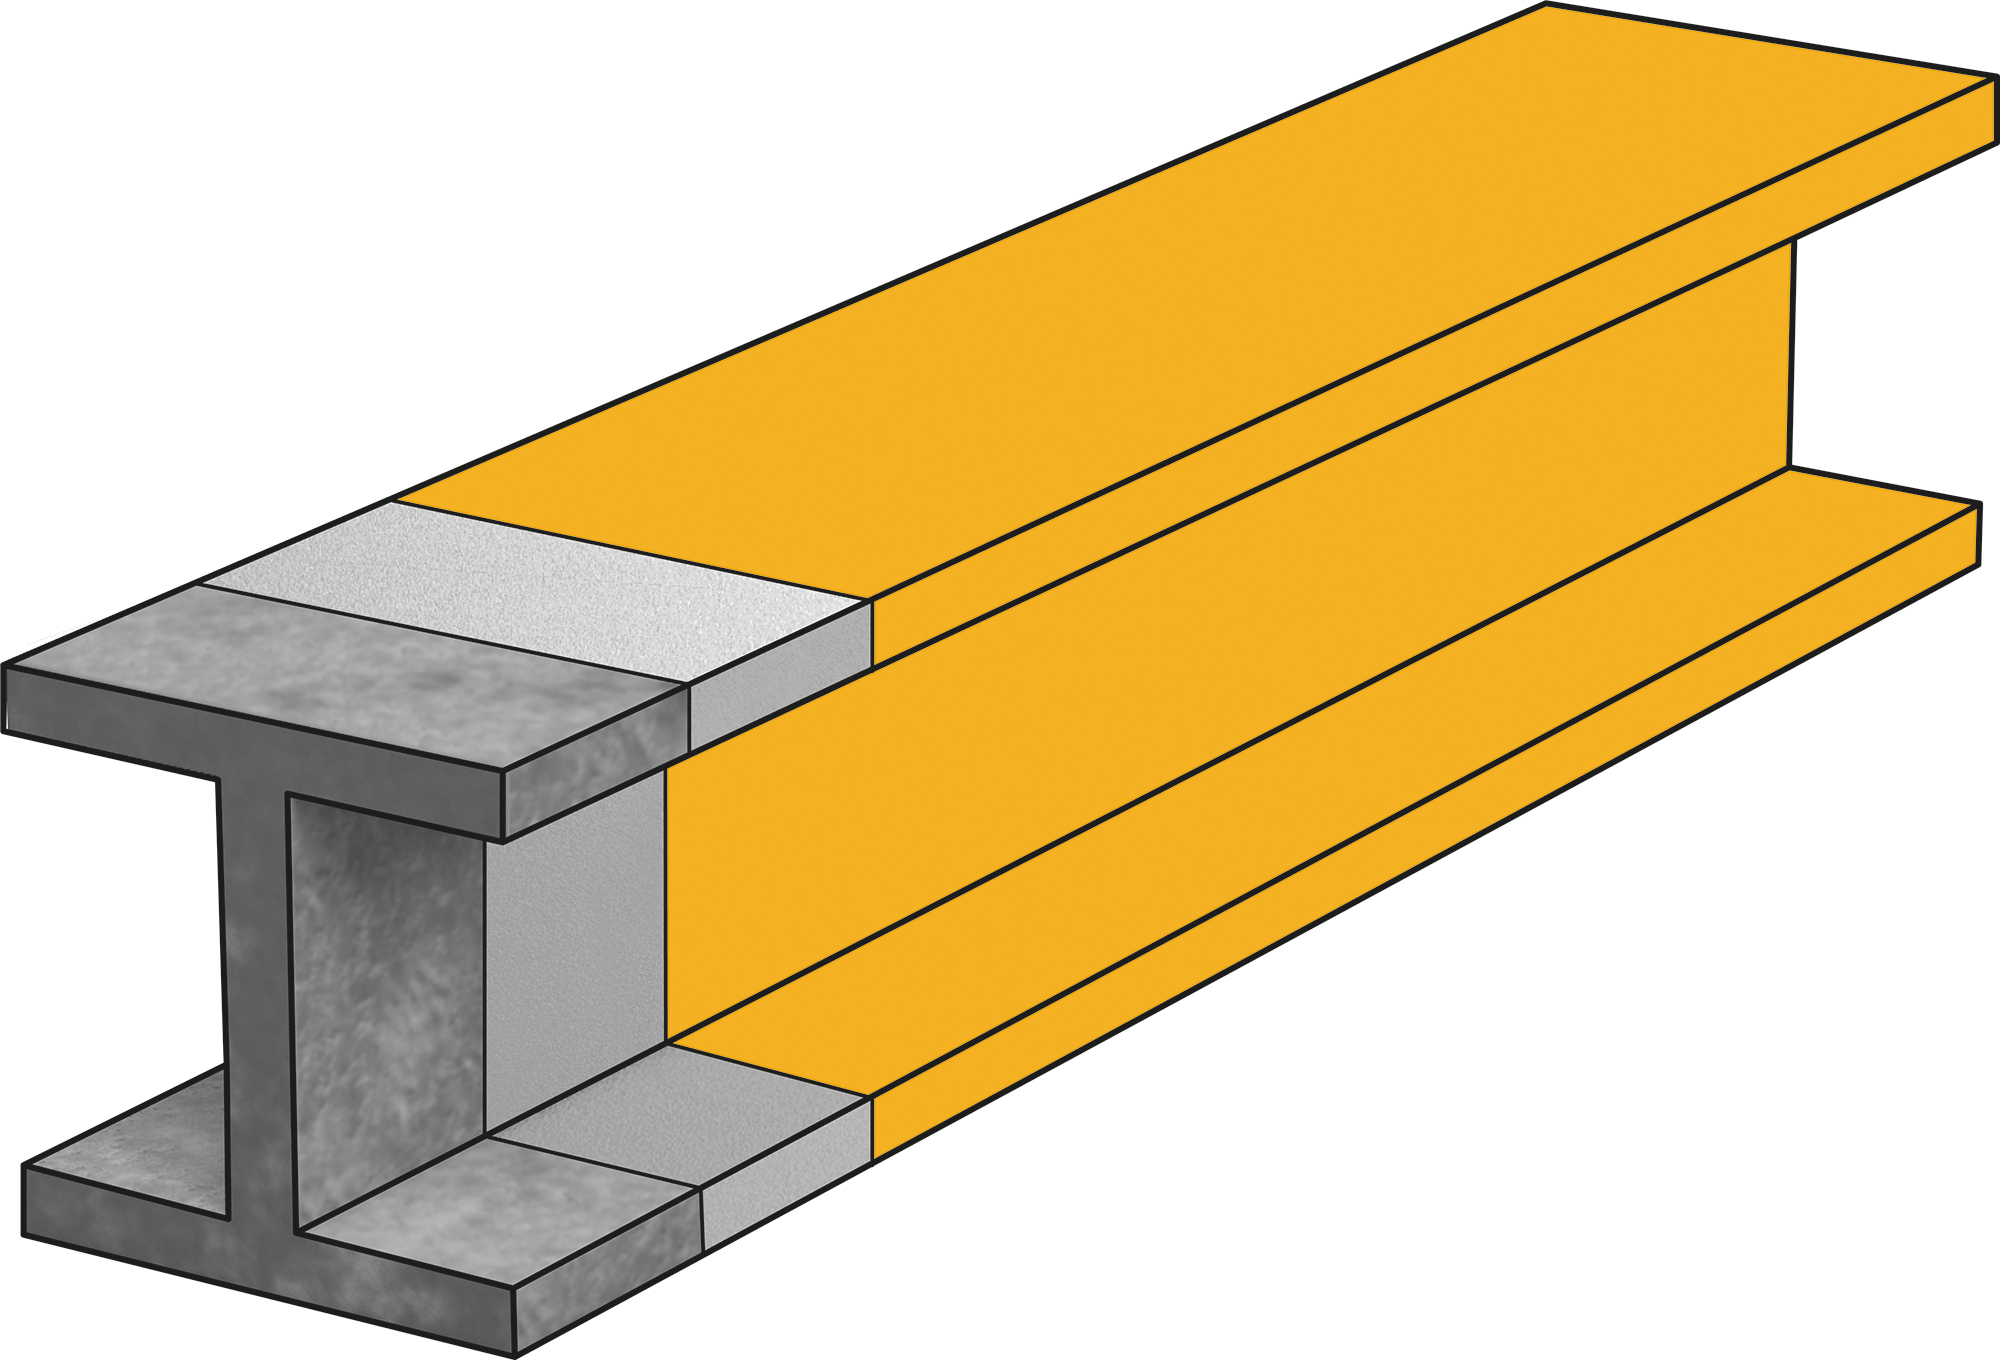 Illustration of beam with intumescent coating passive fire protection